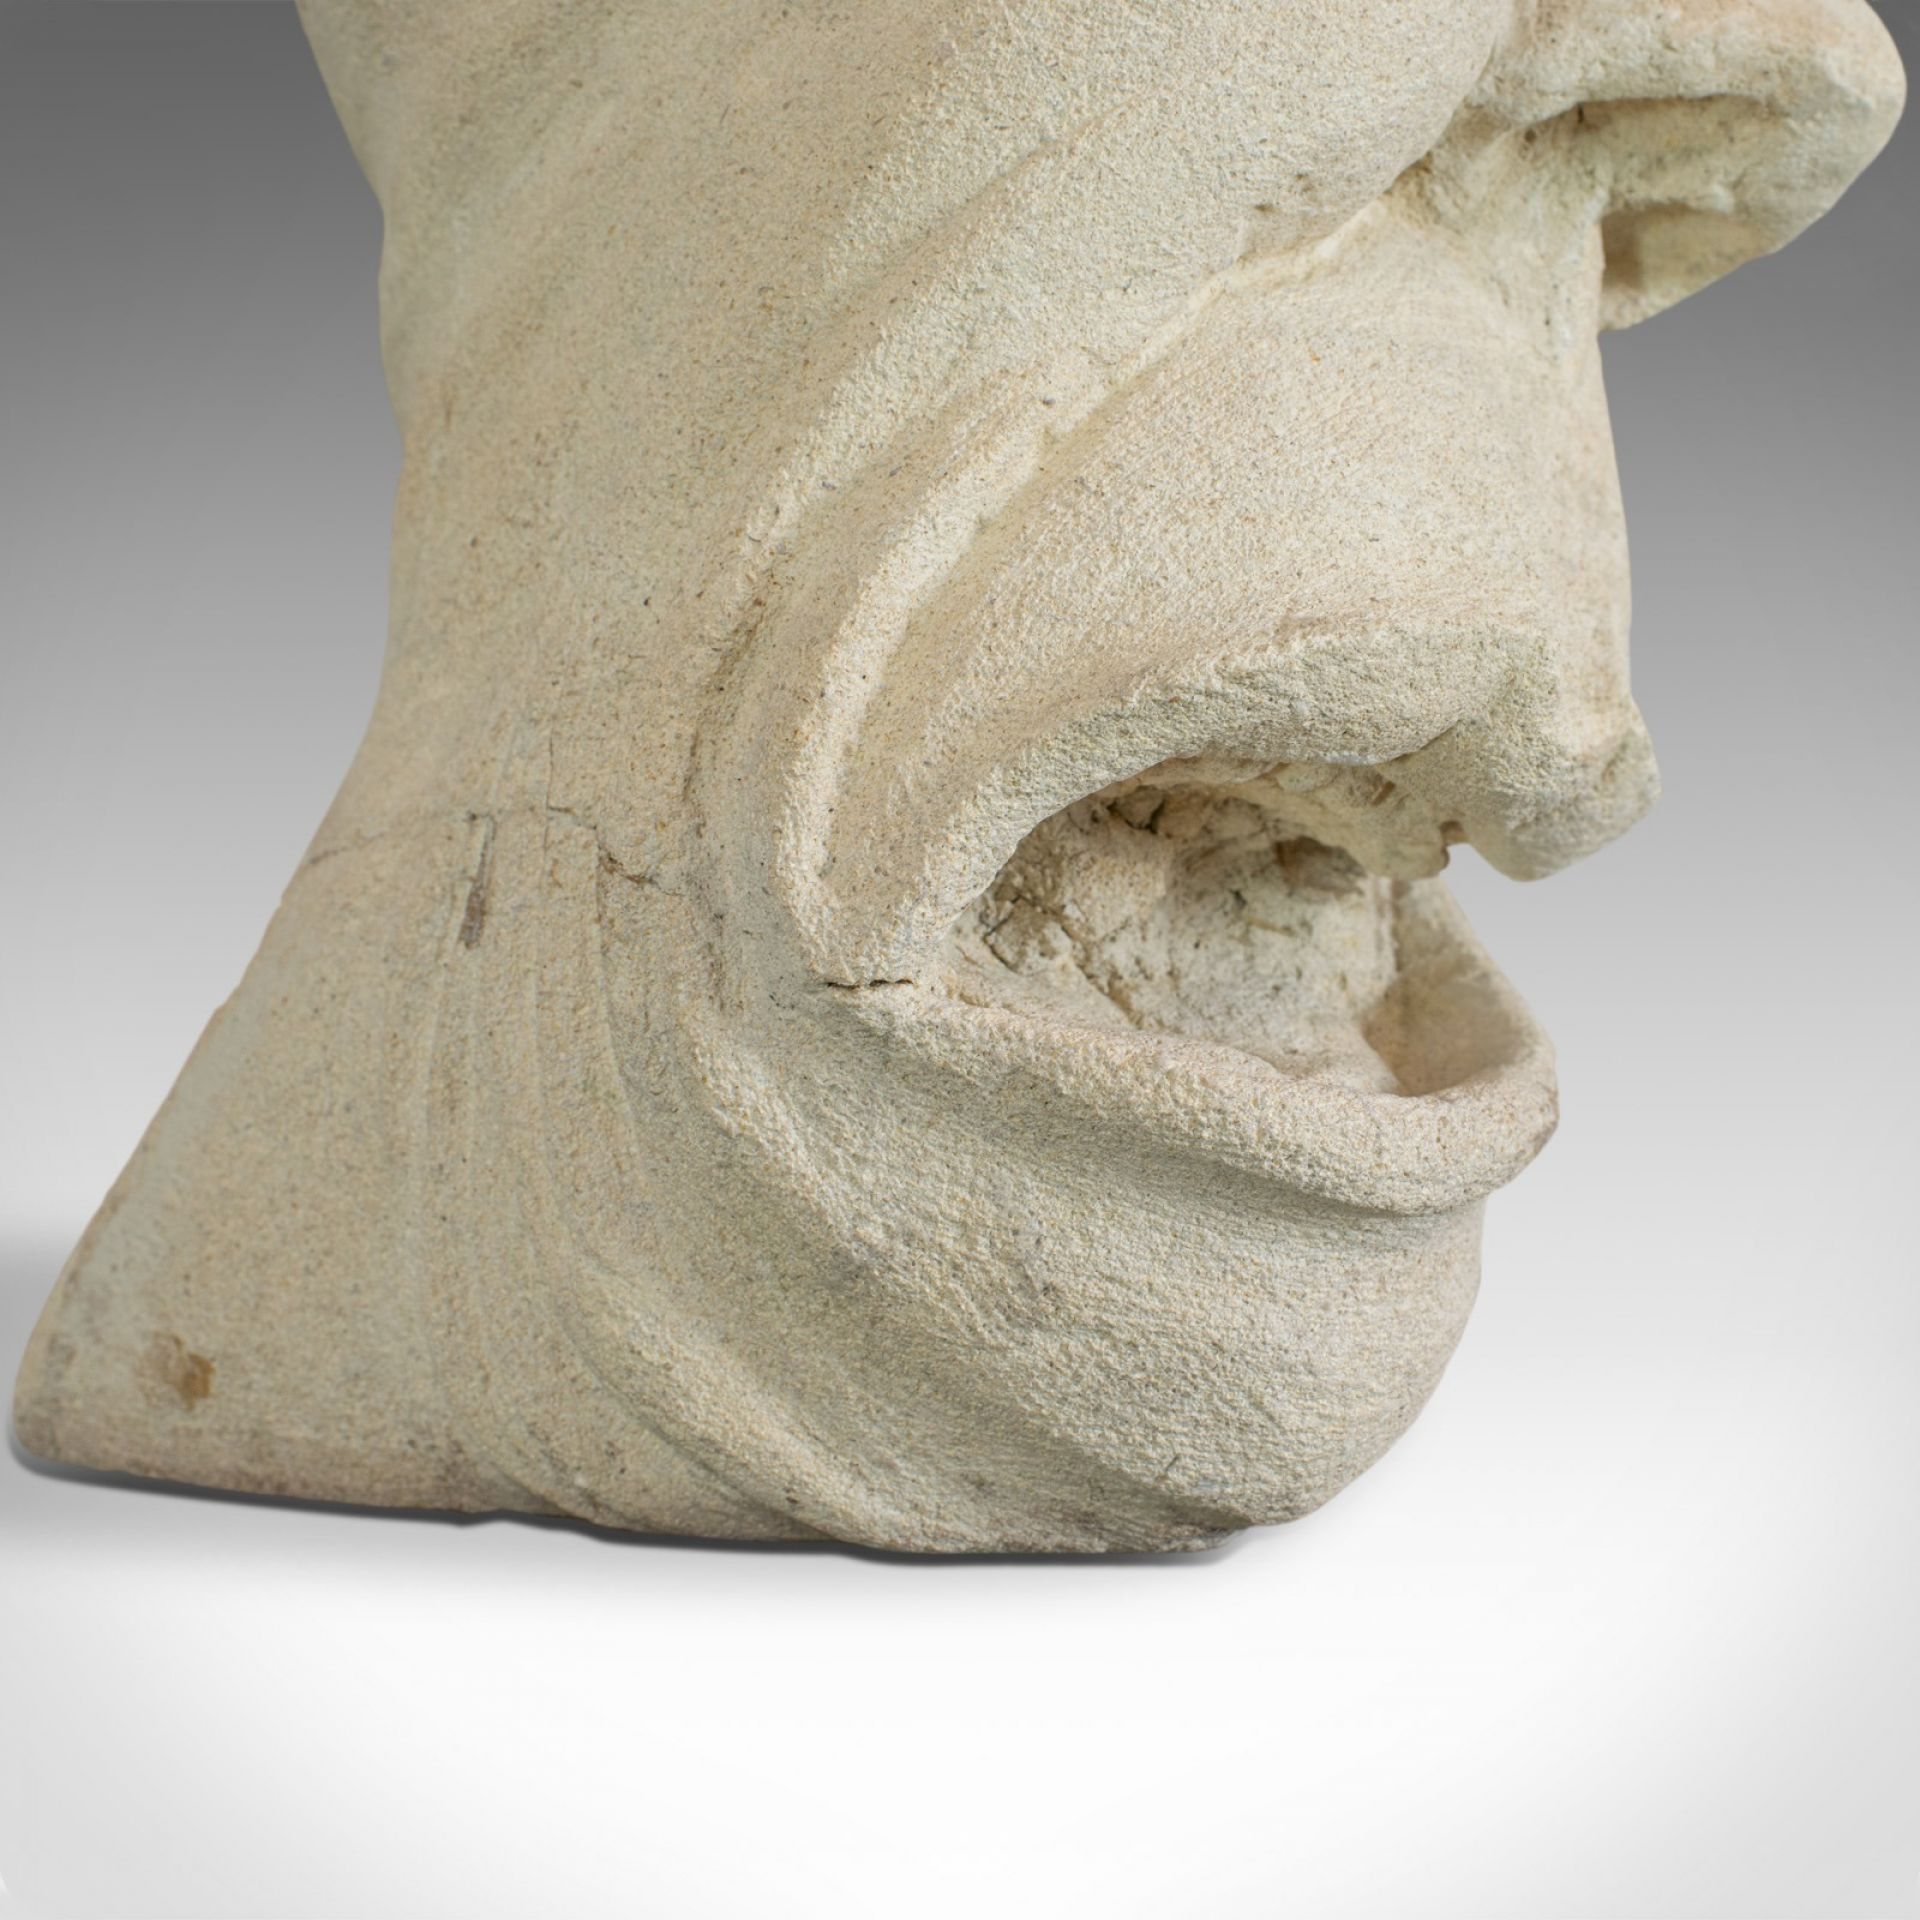 The Twisted Face Bust, Dominic Hurley, English, Bath Stone, Sculpture